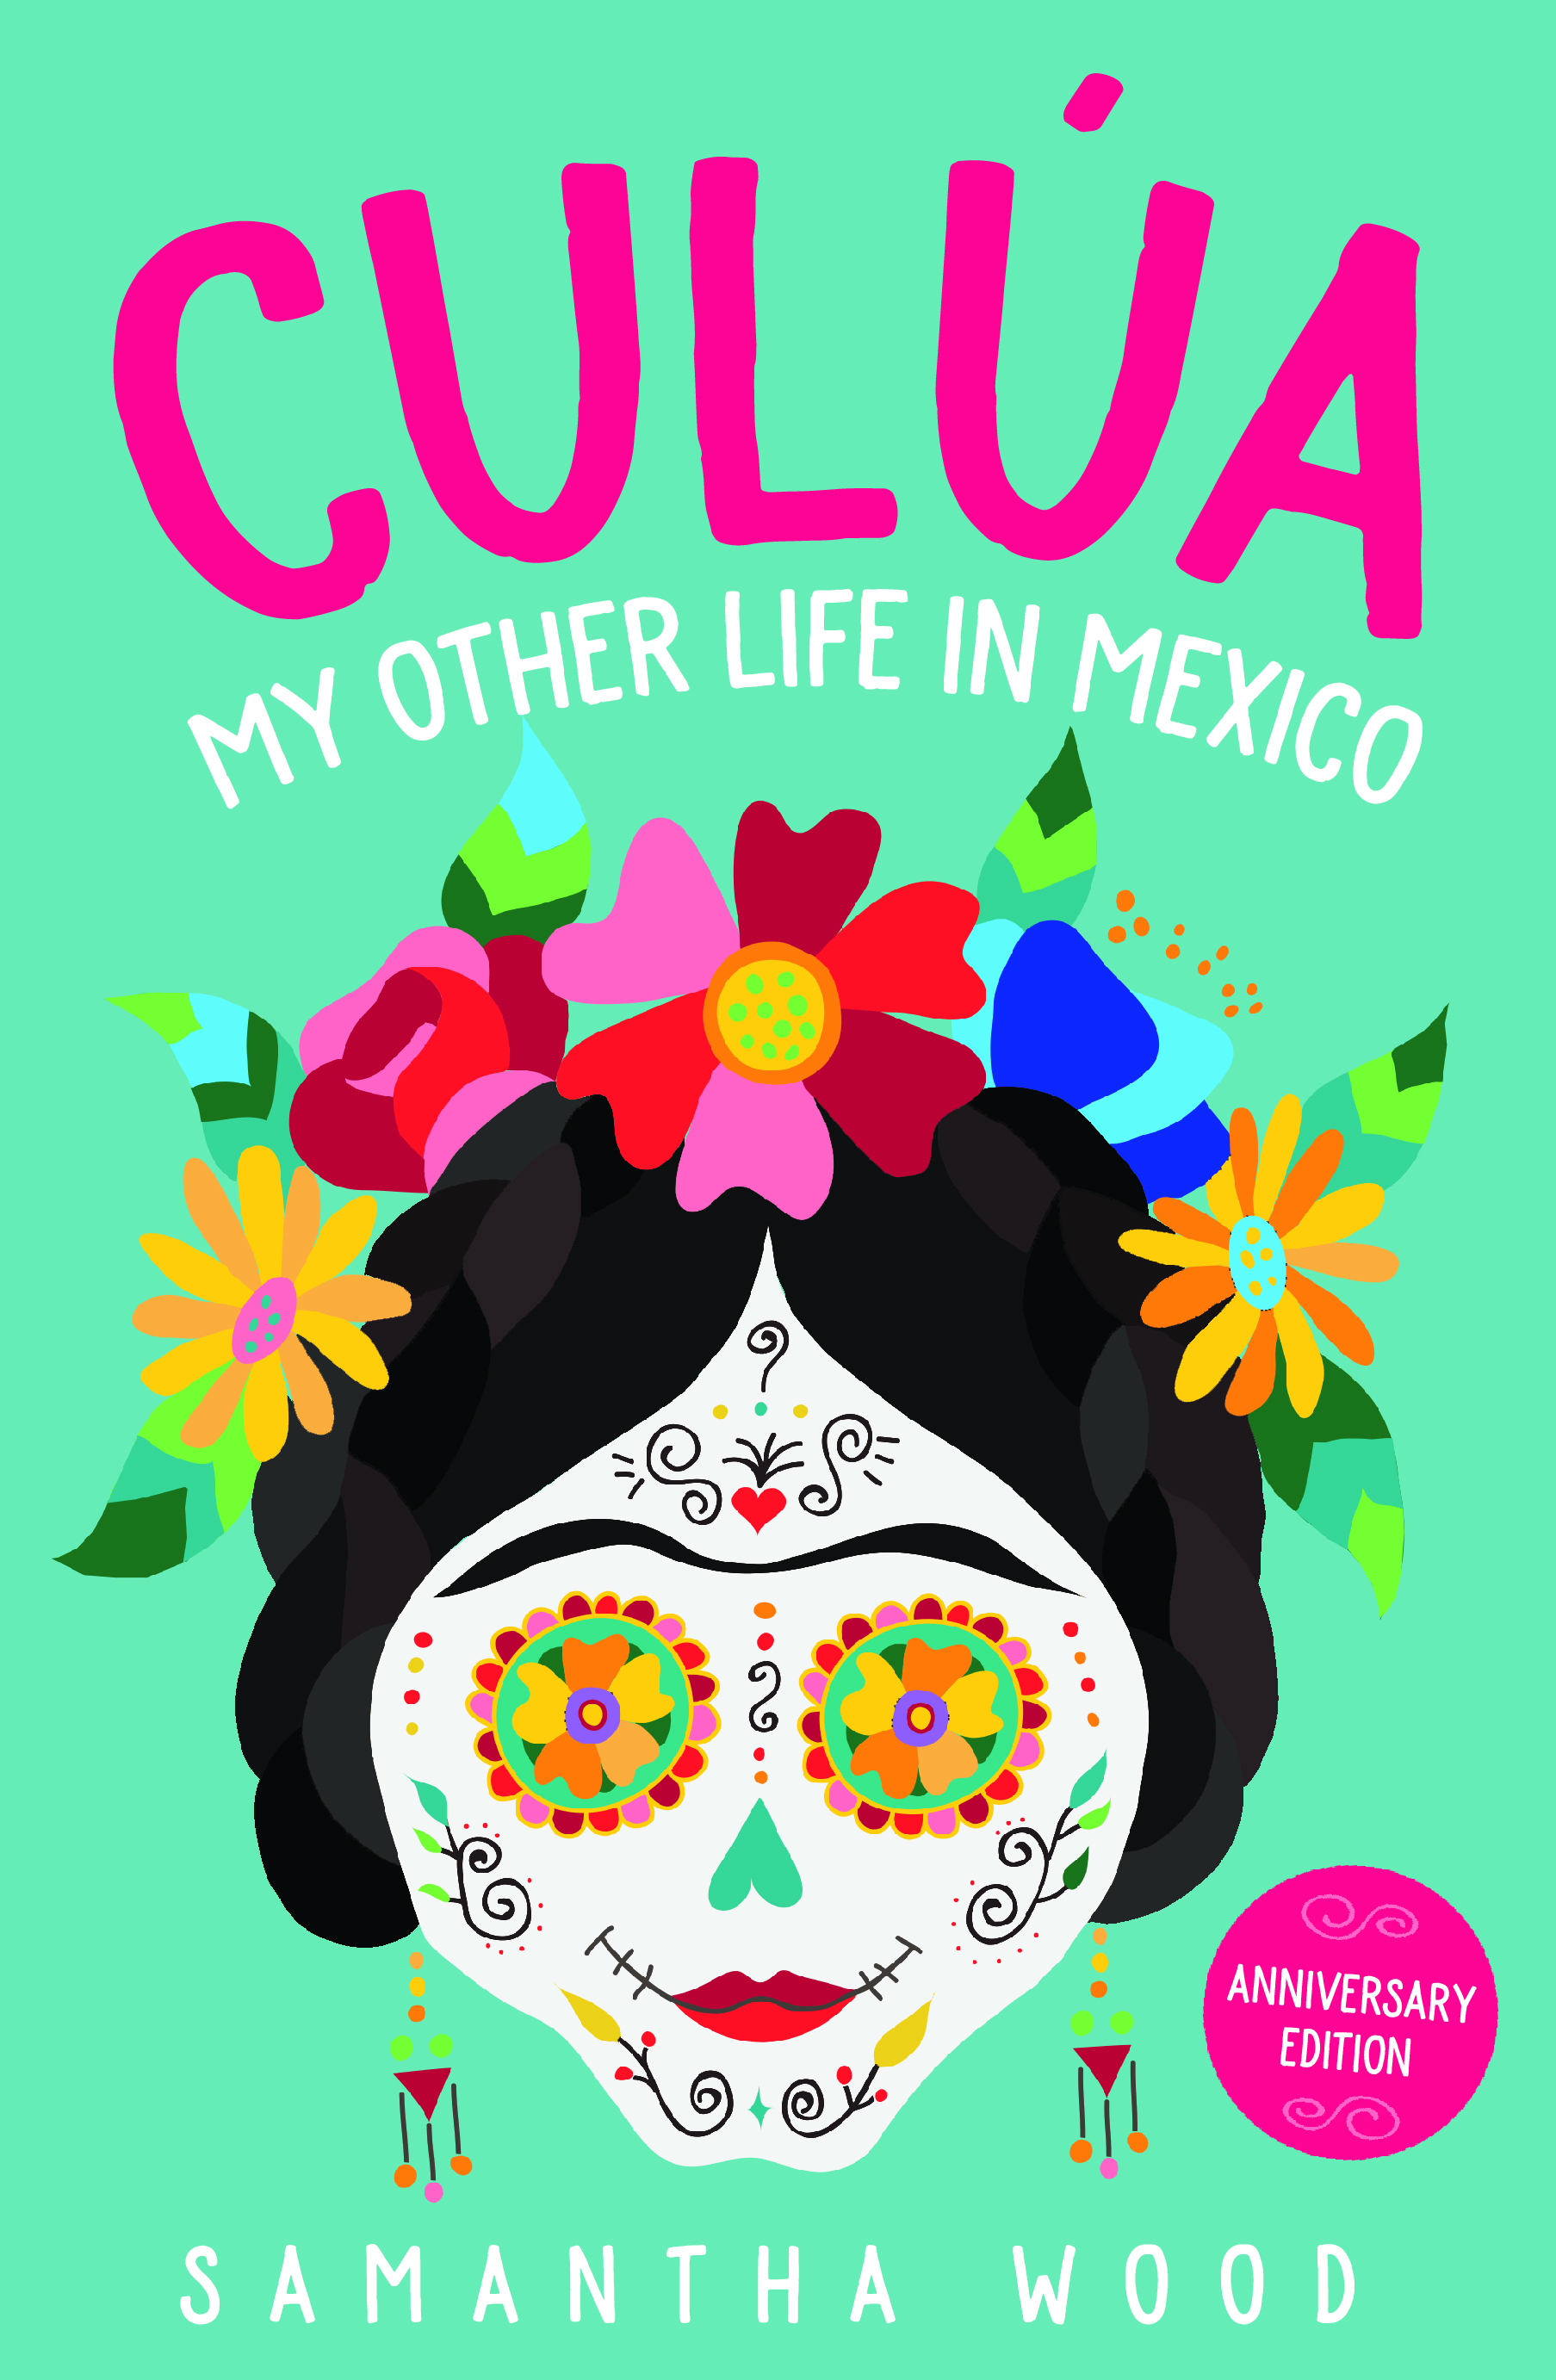 Culua: My Other Life in Mexico, a novel by Samantha Wood